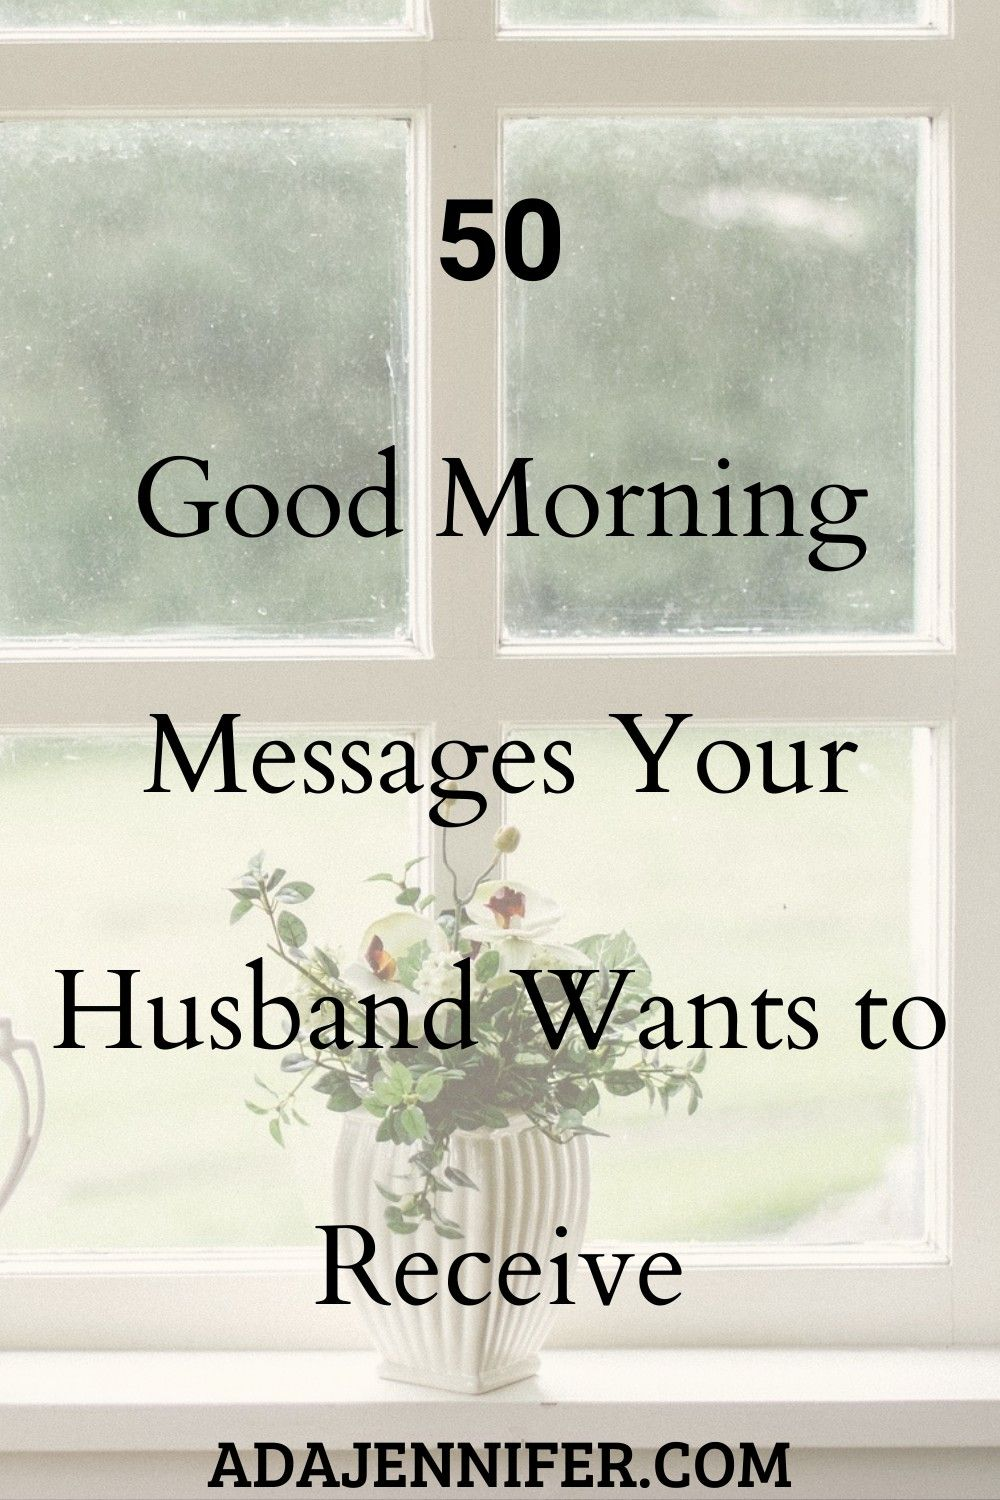 50 Good Morning Messages Your Husband Wants To Receive Good Morning Texts Good Morning Messages Morning Texts For Him [ 1500 x 1000 Pixel ]